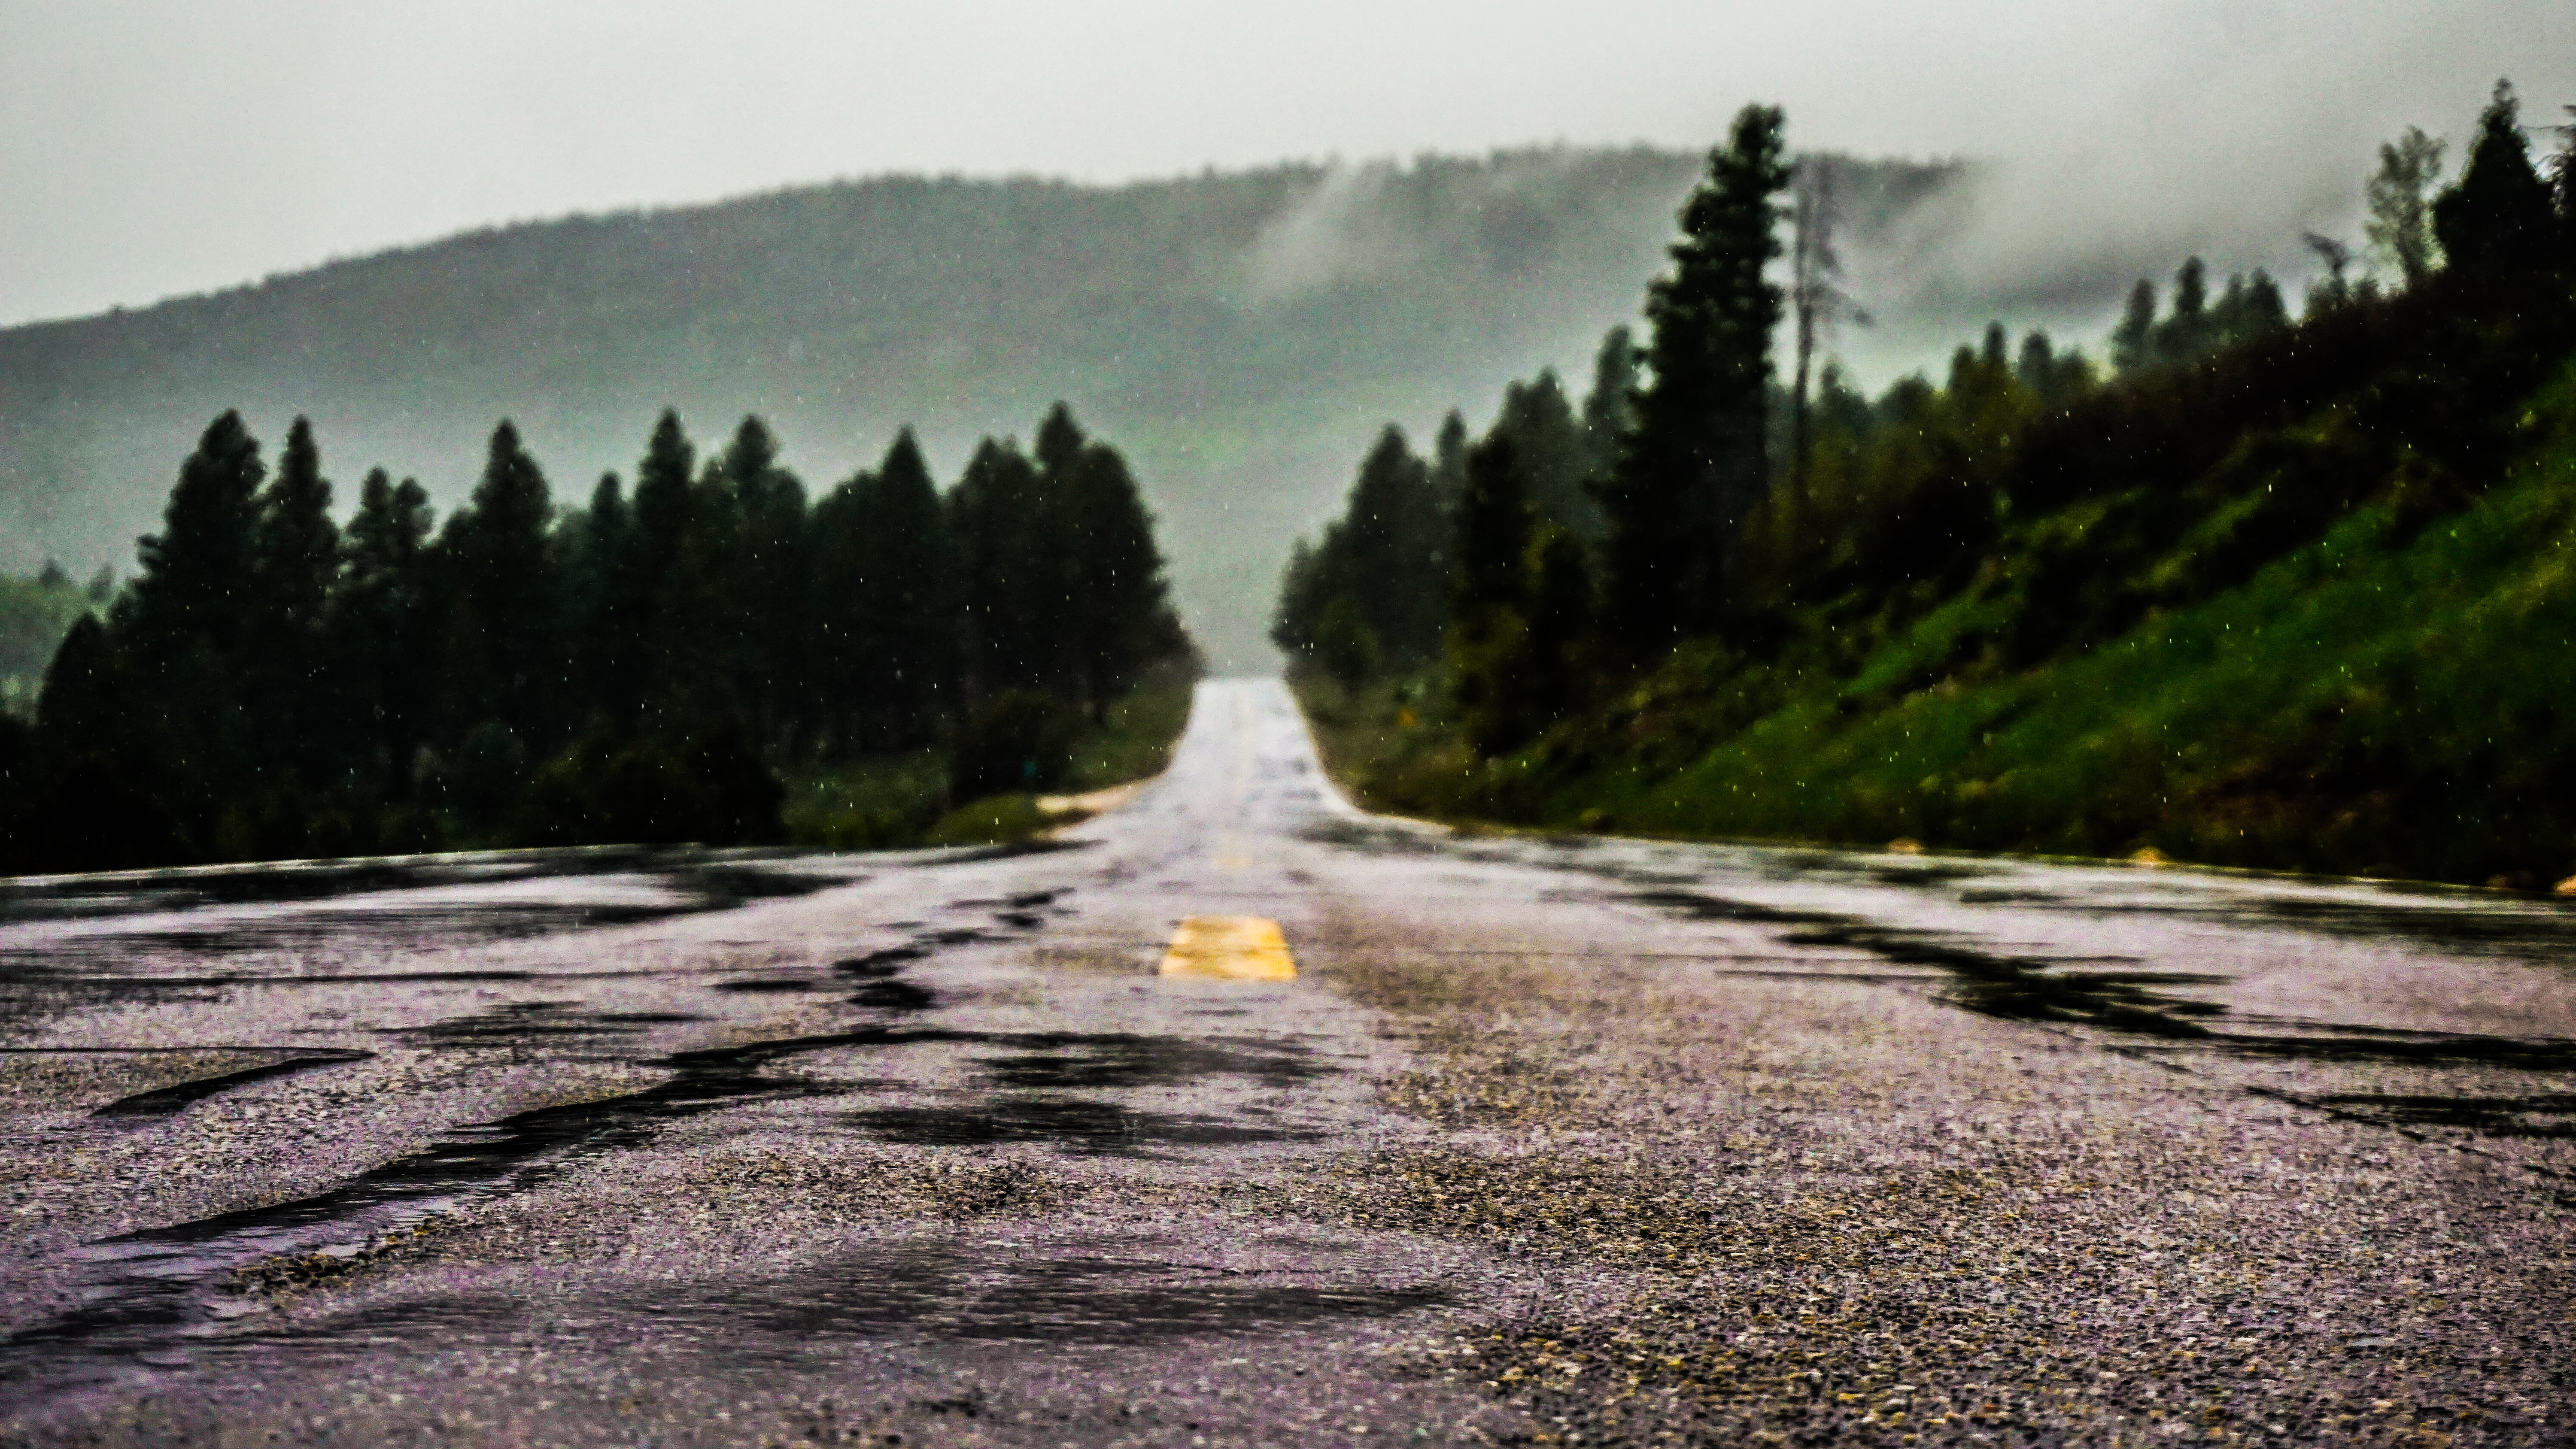 A low shot of a wet asphalt road lined with evergreen trees